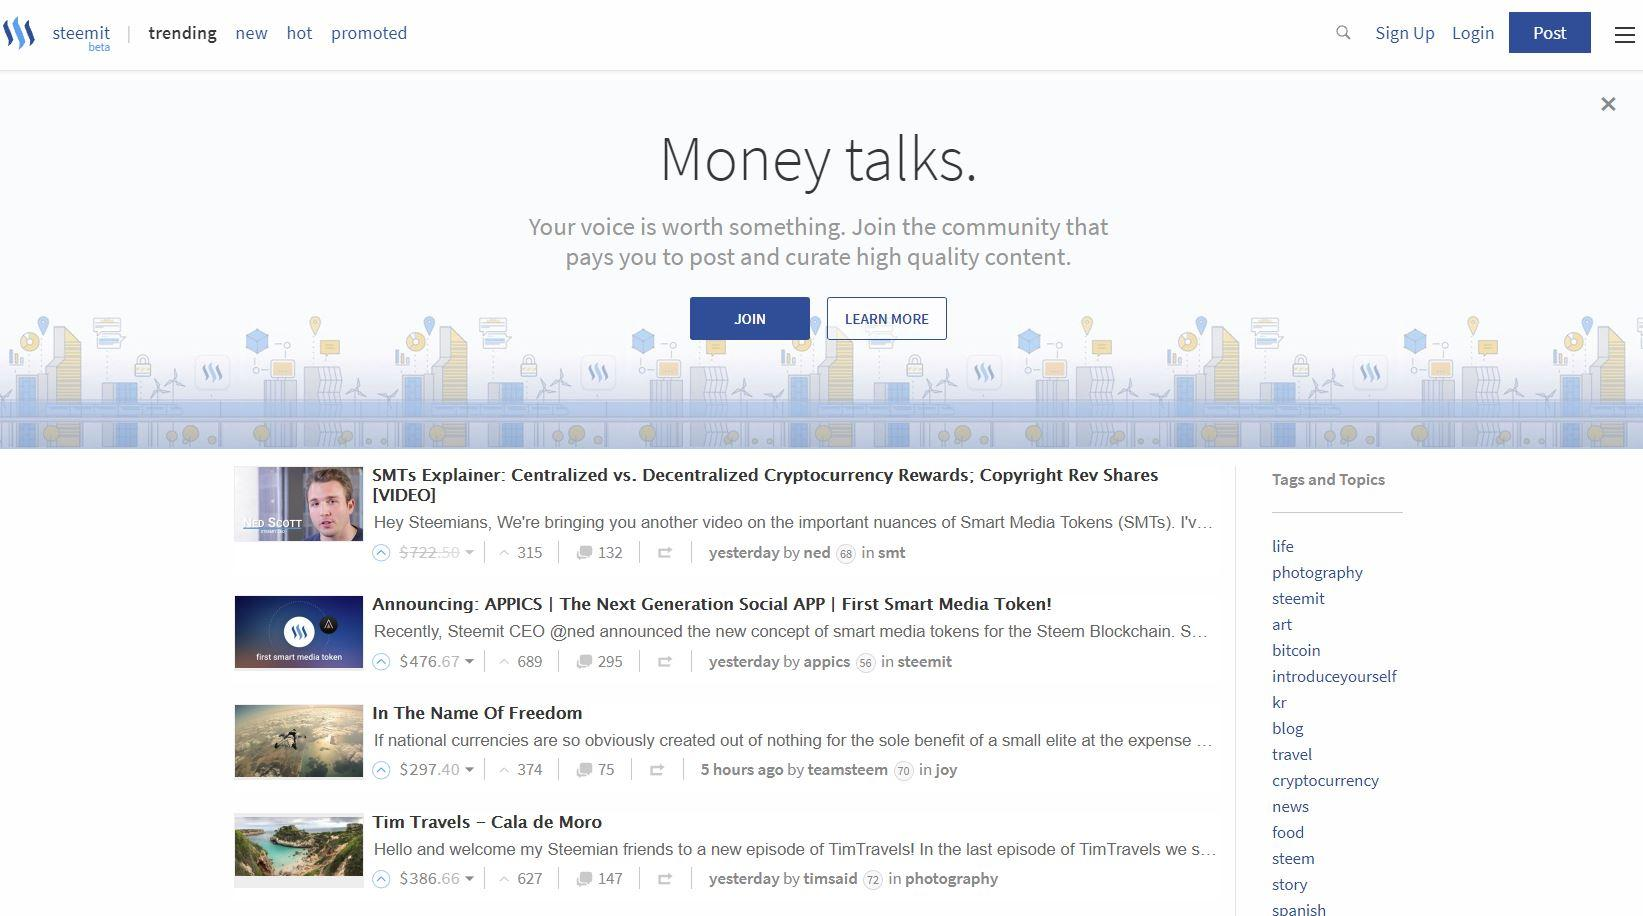 One Unconventional Reason To Be Concerned About Facebook's Valuation: Cryptocurrencies